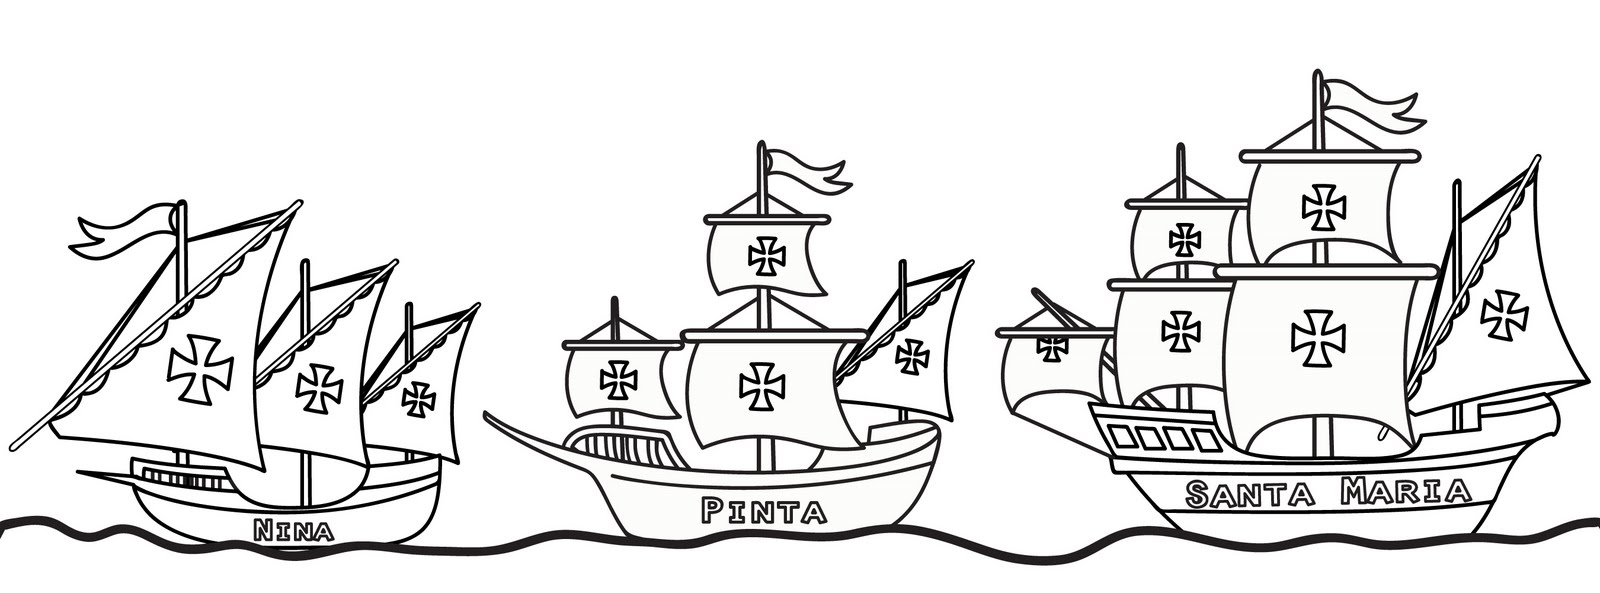 columbus ships coloring pages - photo #21